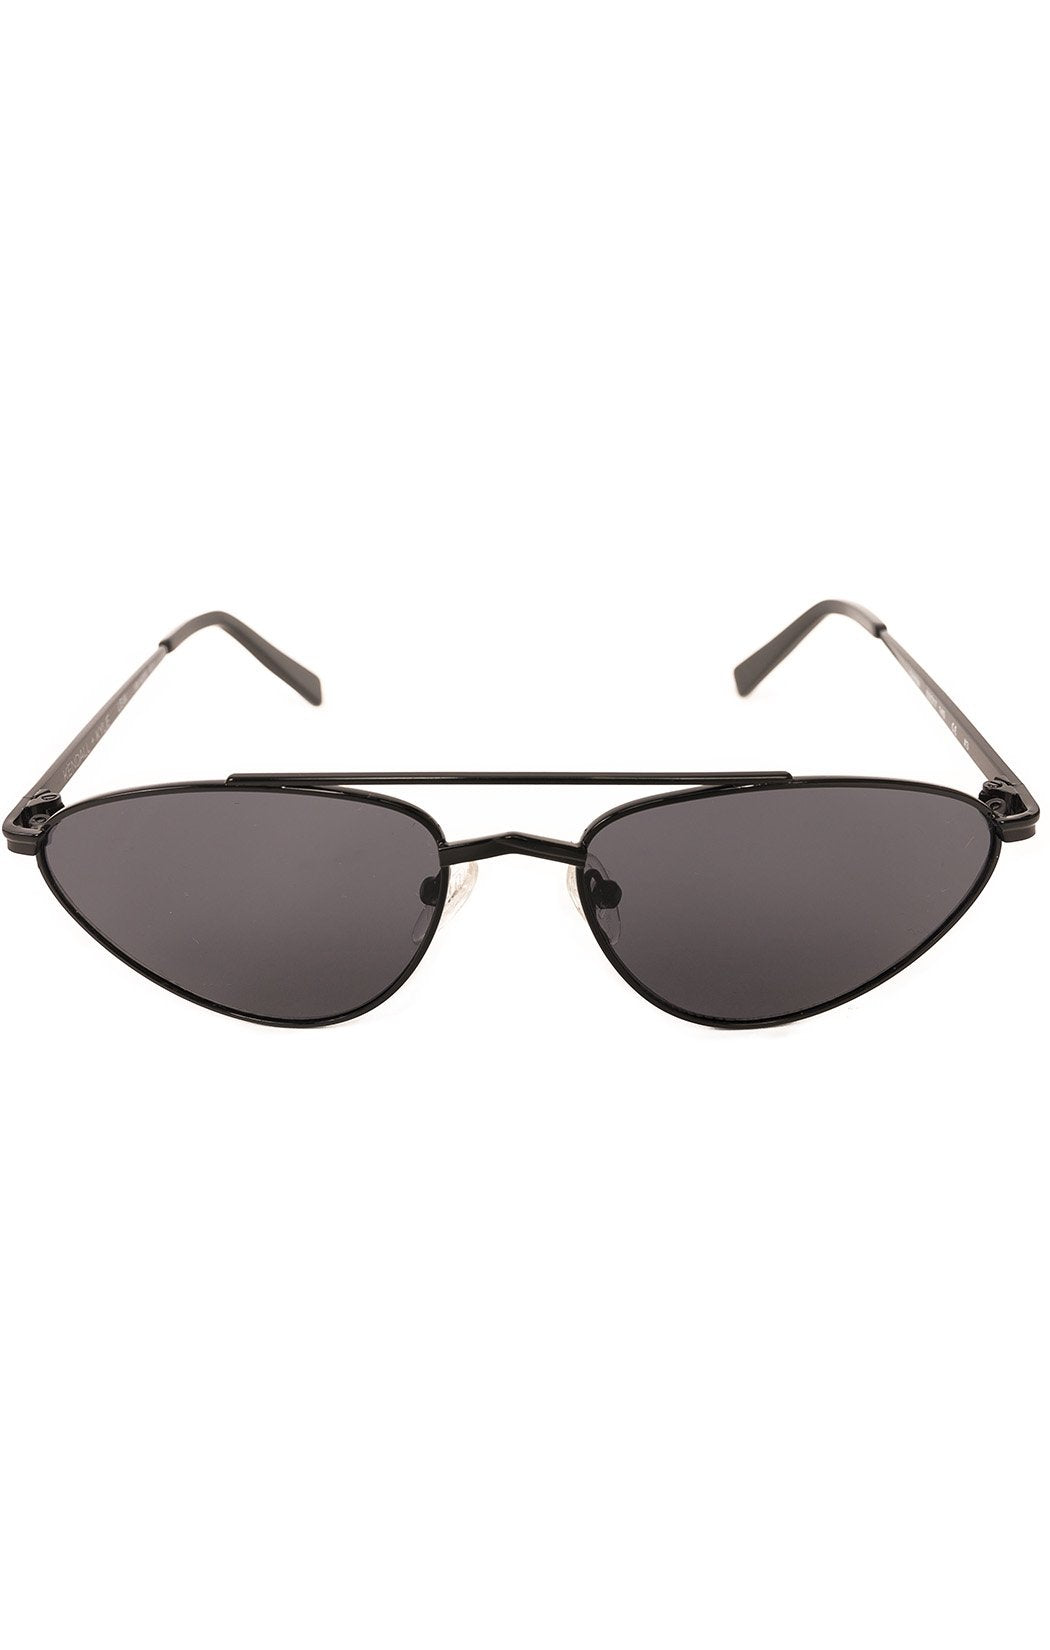 "Front view of KENDALL & KYLIE  Sunglasses  Size: 5"" W x 1.5"" H"